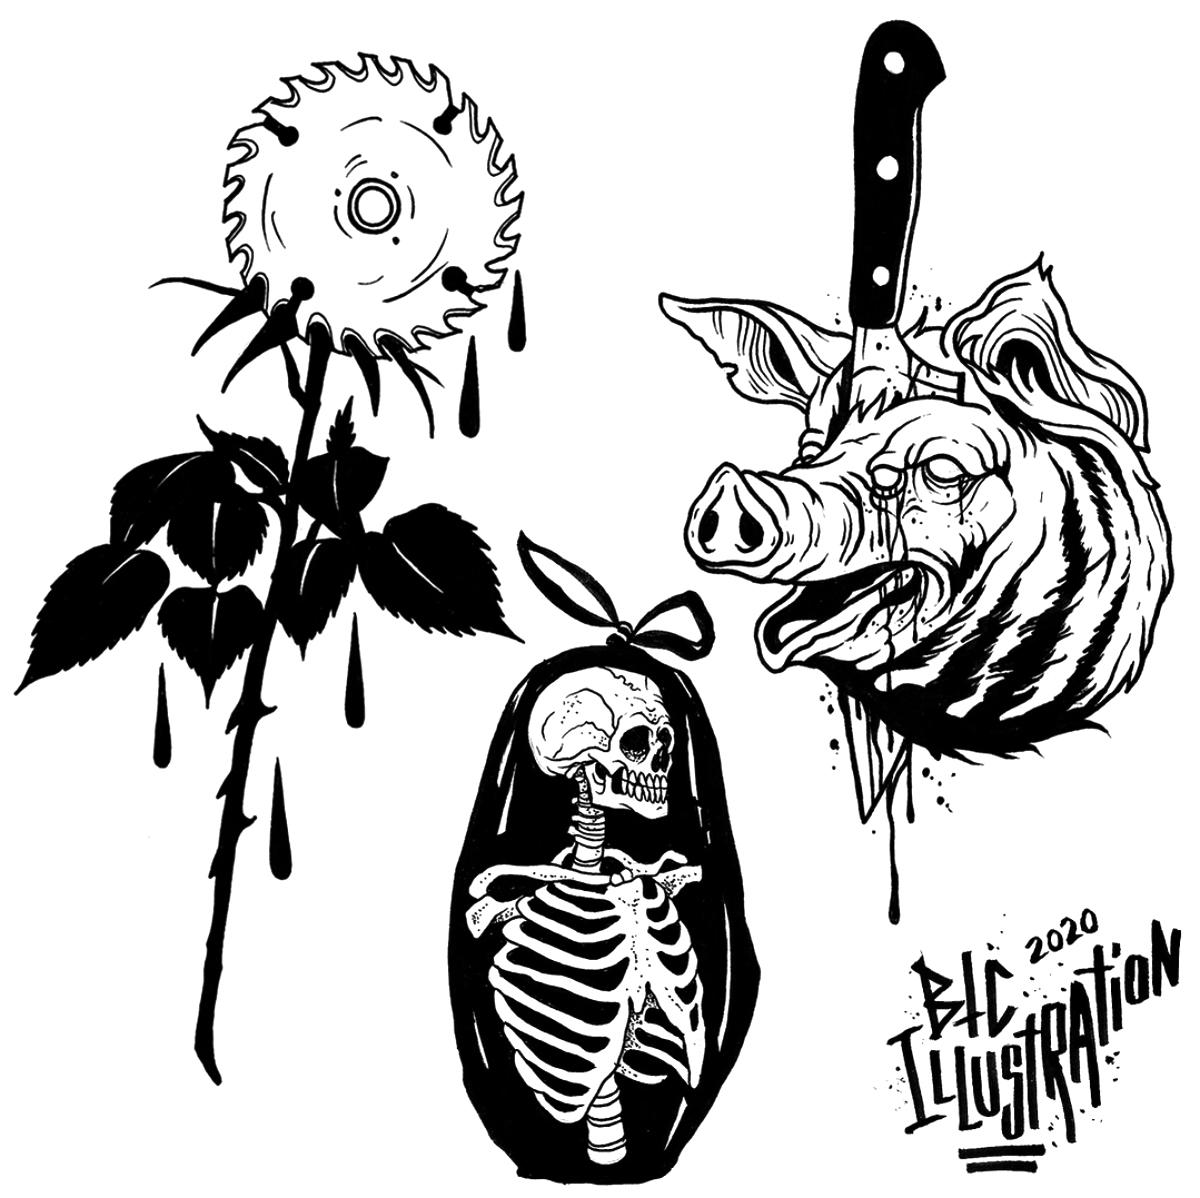 Thanks for the love on the previous flash sheet! Here's another, thanks for looking!